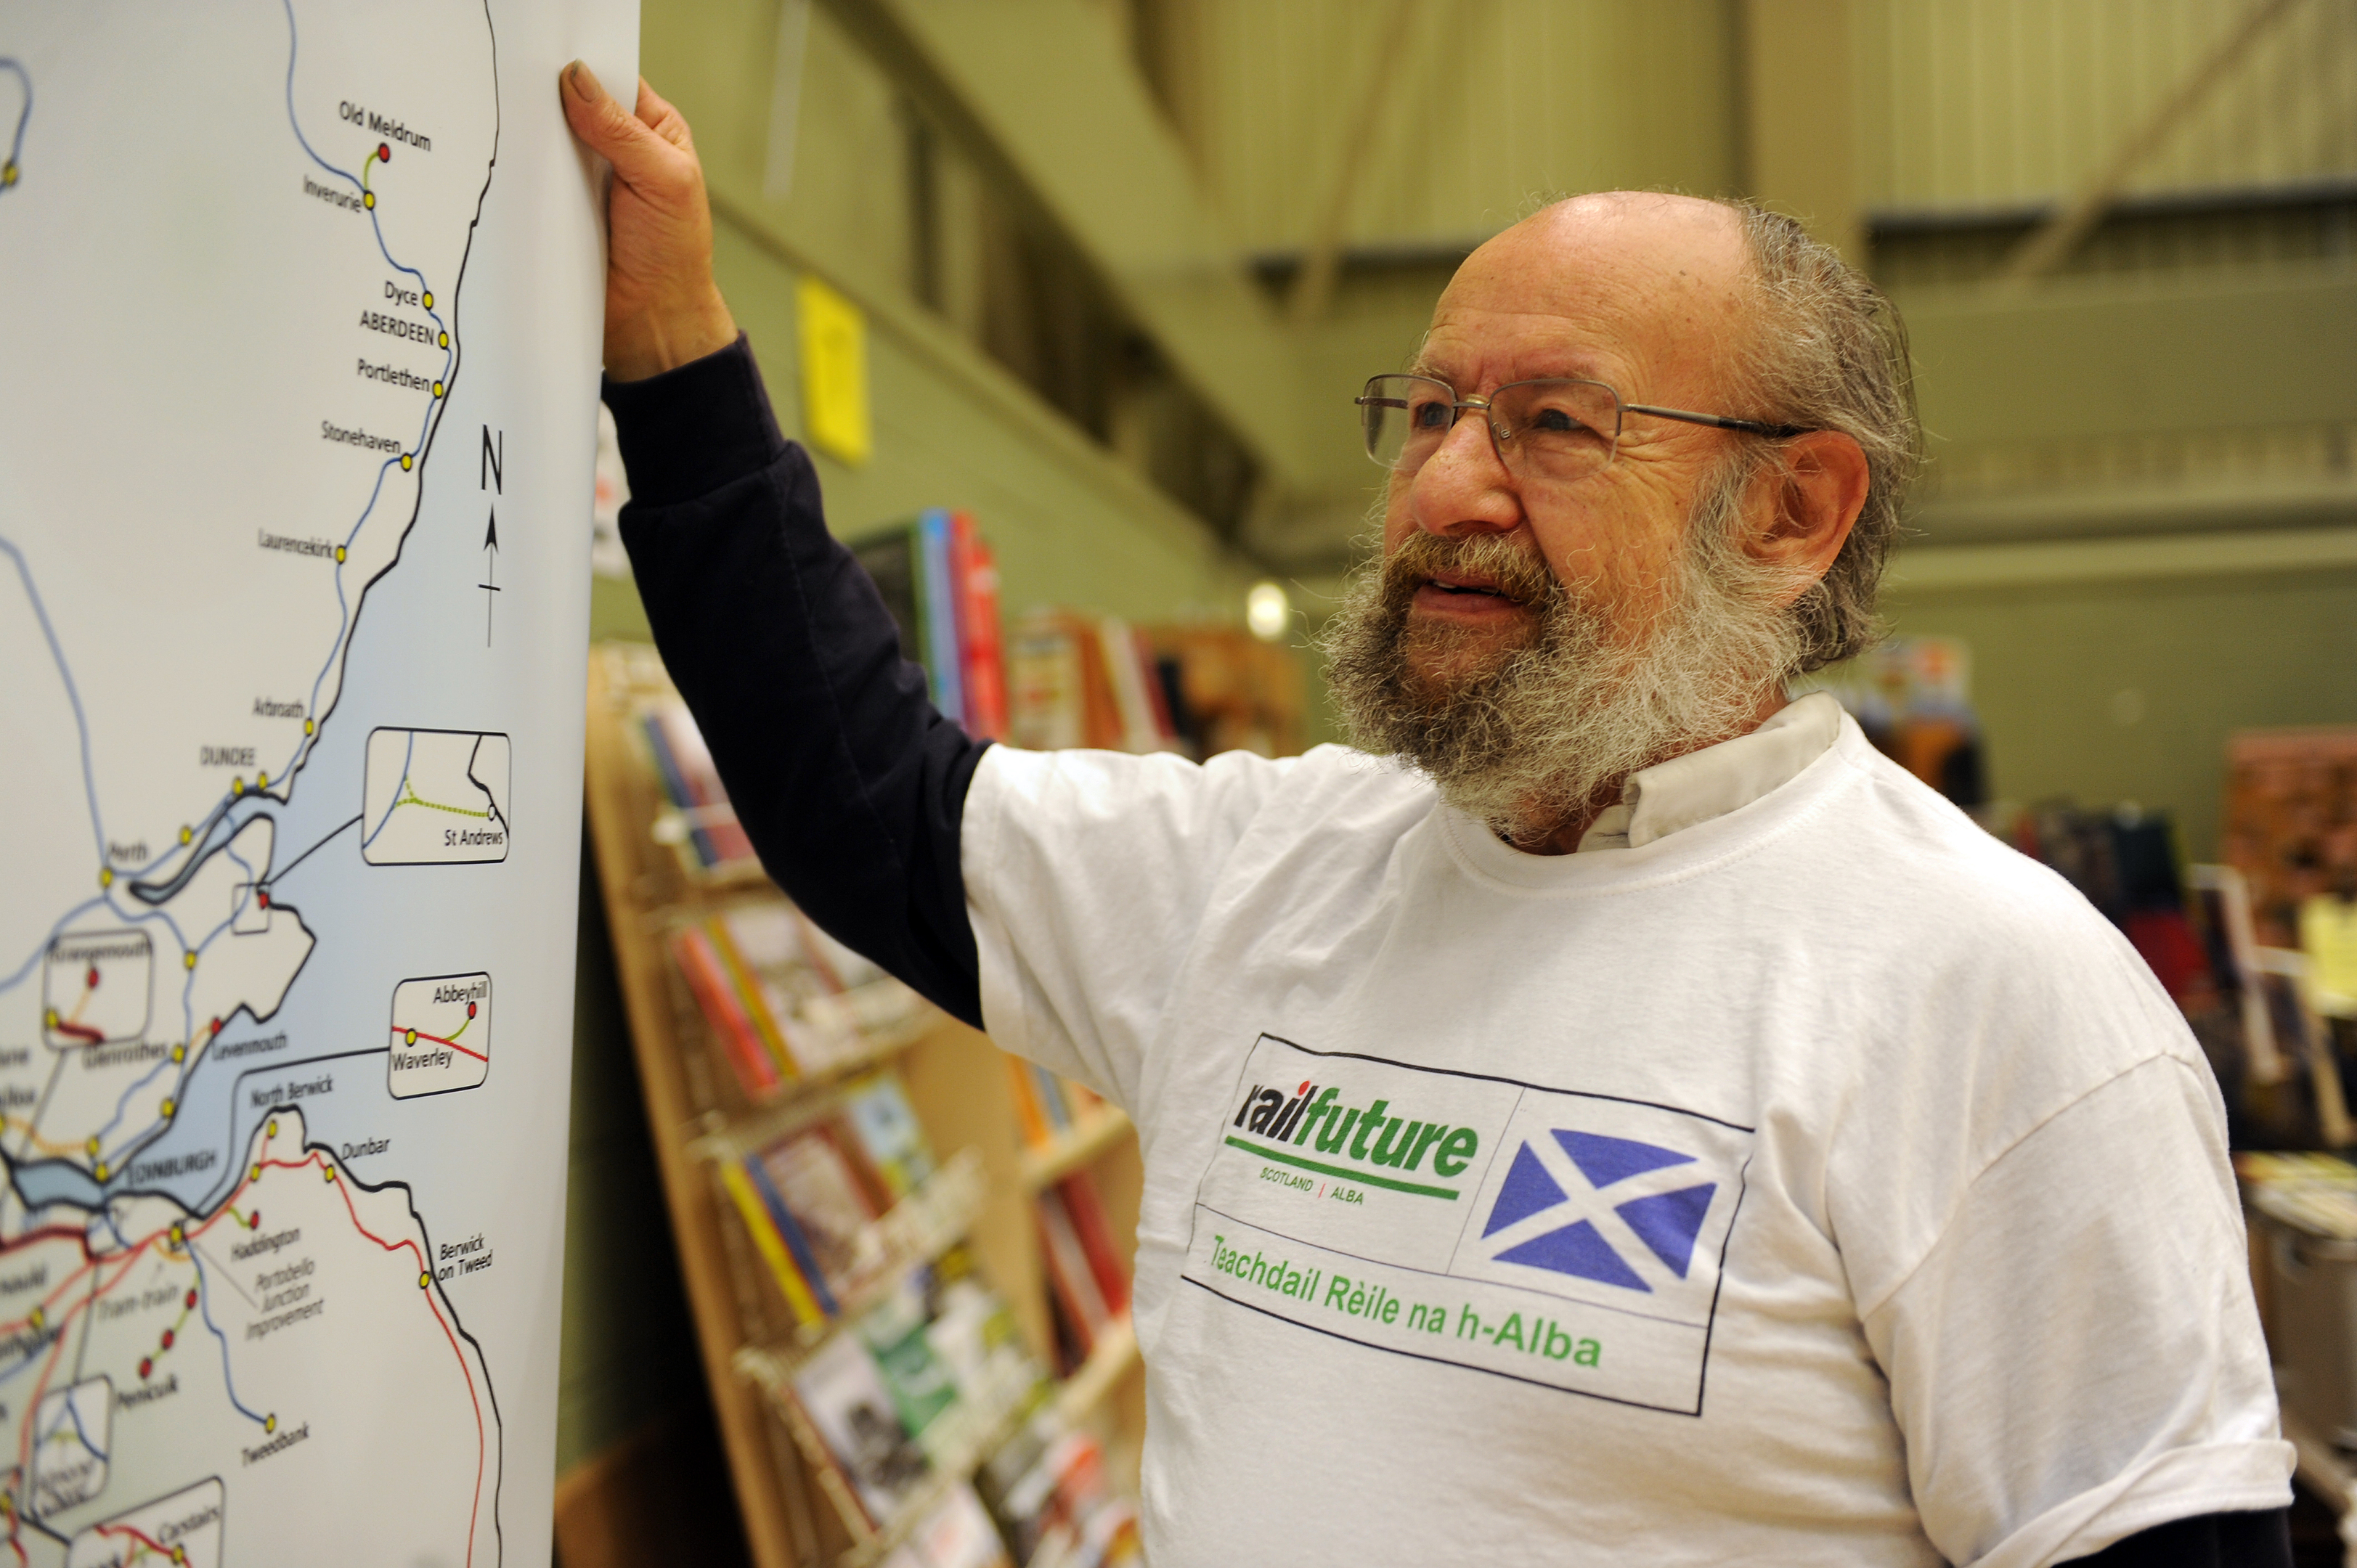 Roderick McDogall, vice Chairman of Railfuture (Scotland) with the plans on Saturday